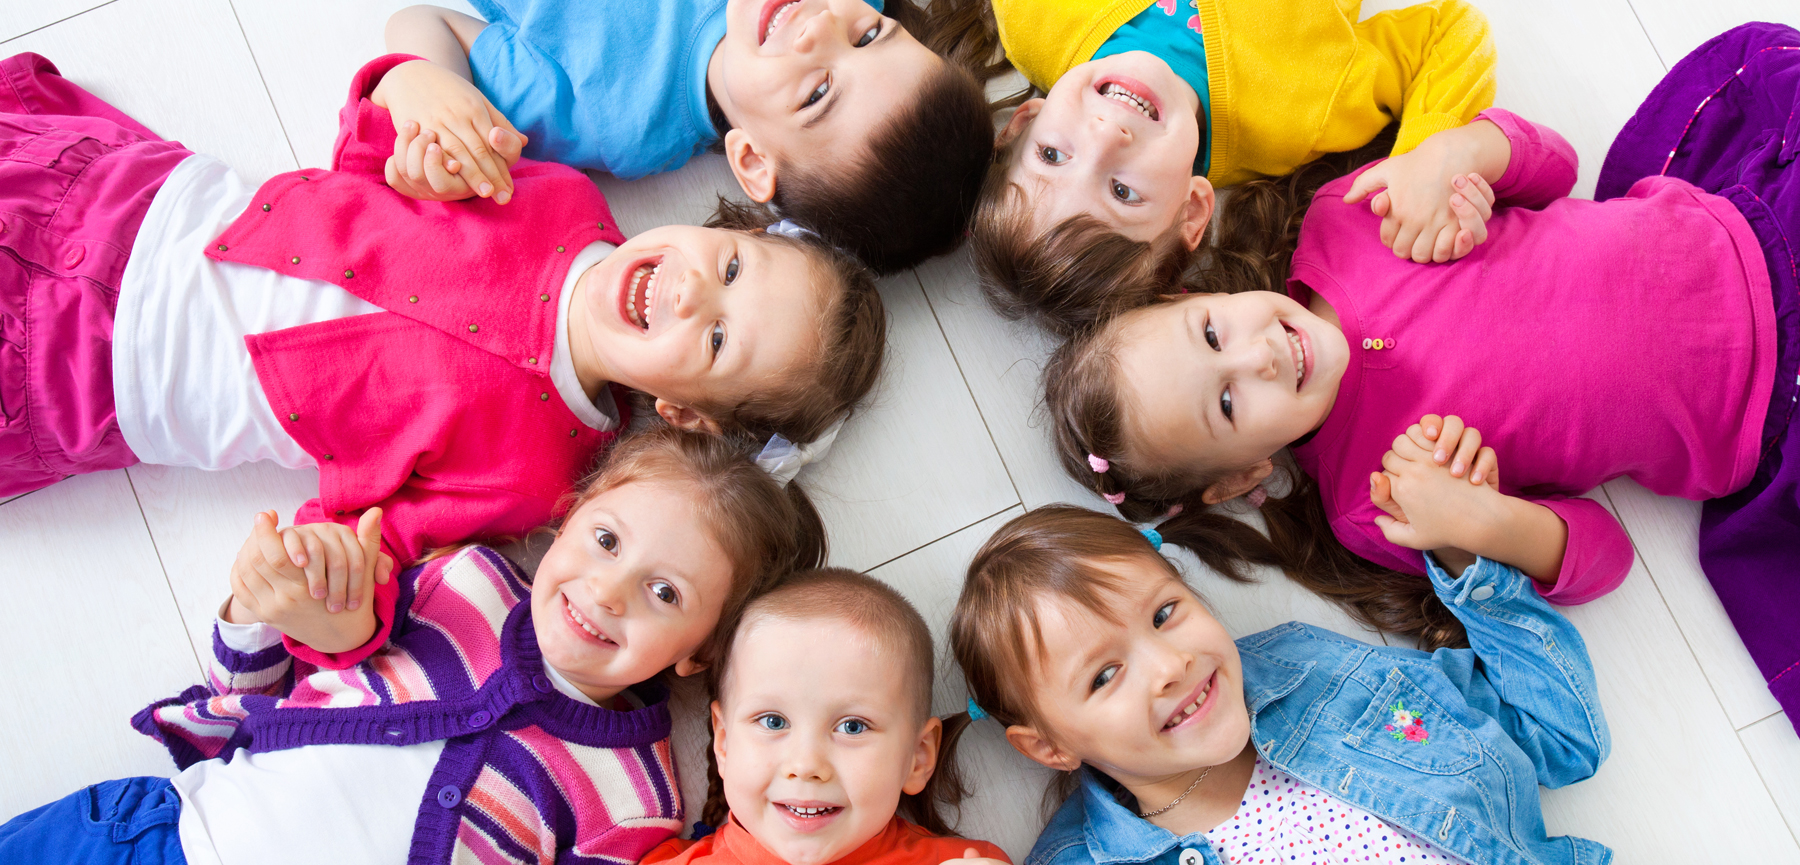 Children in a circle on the ground